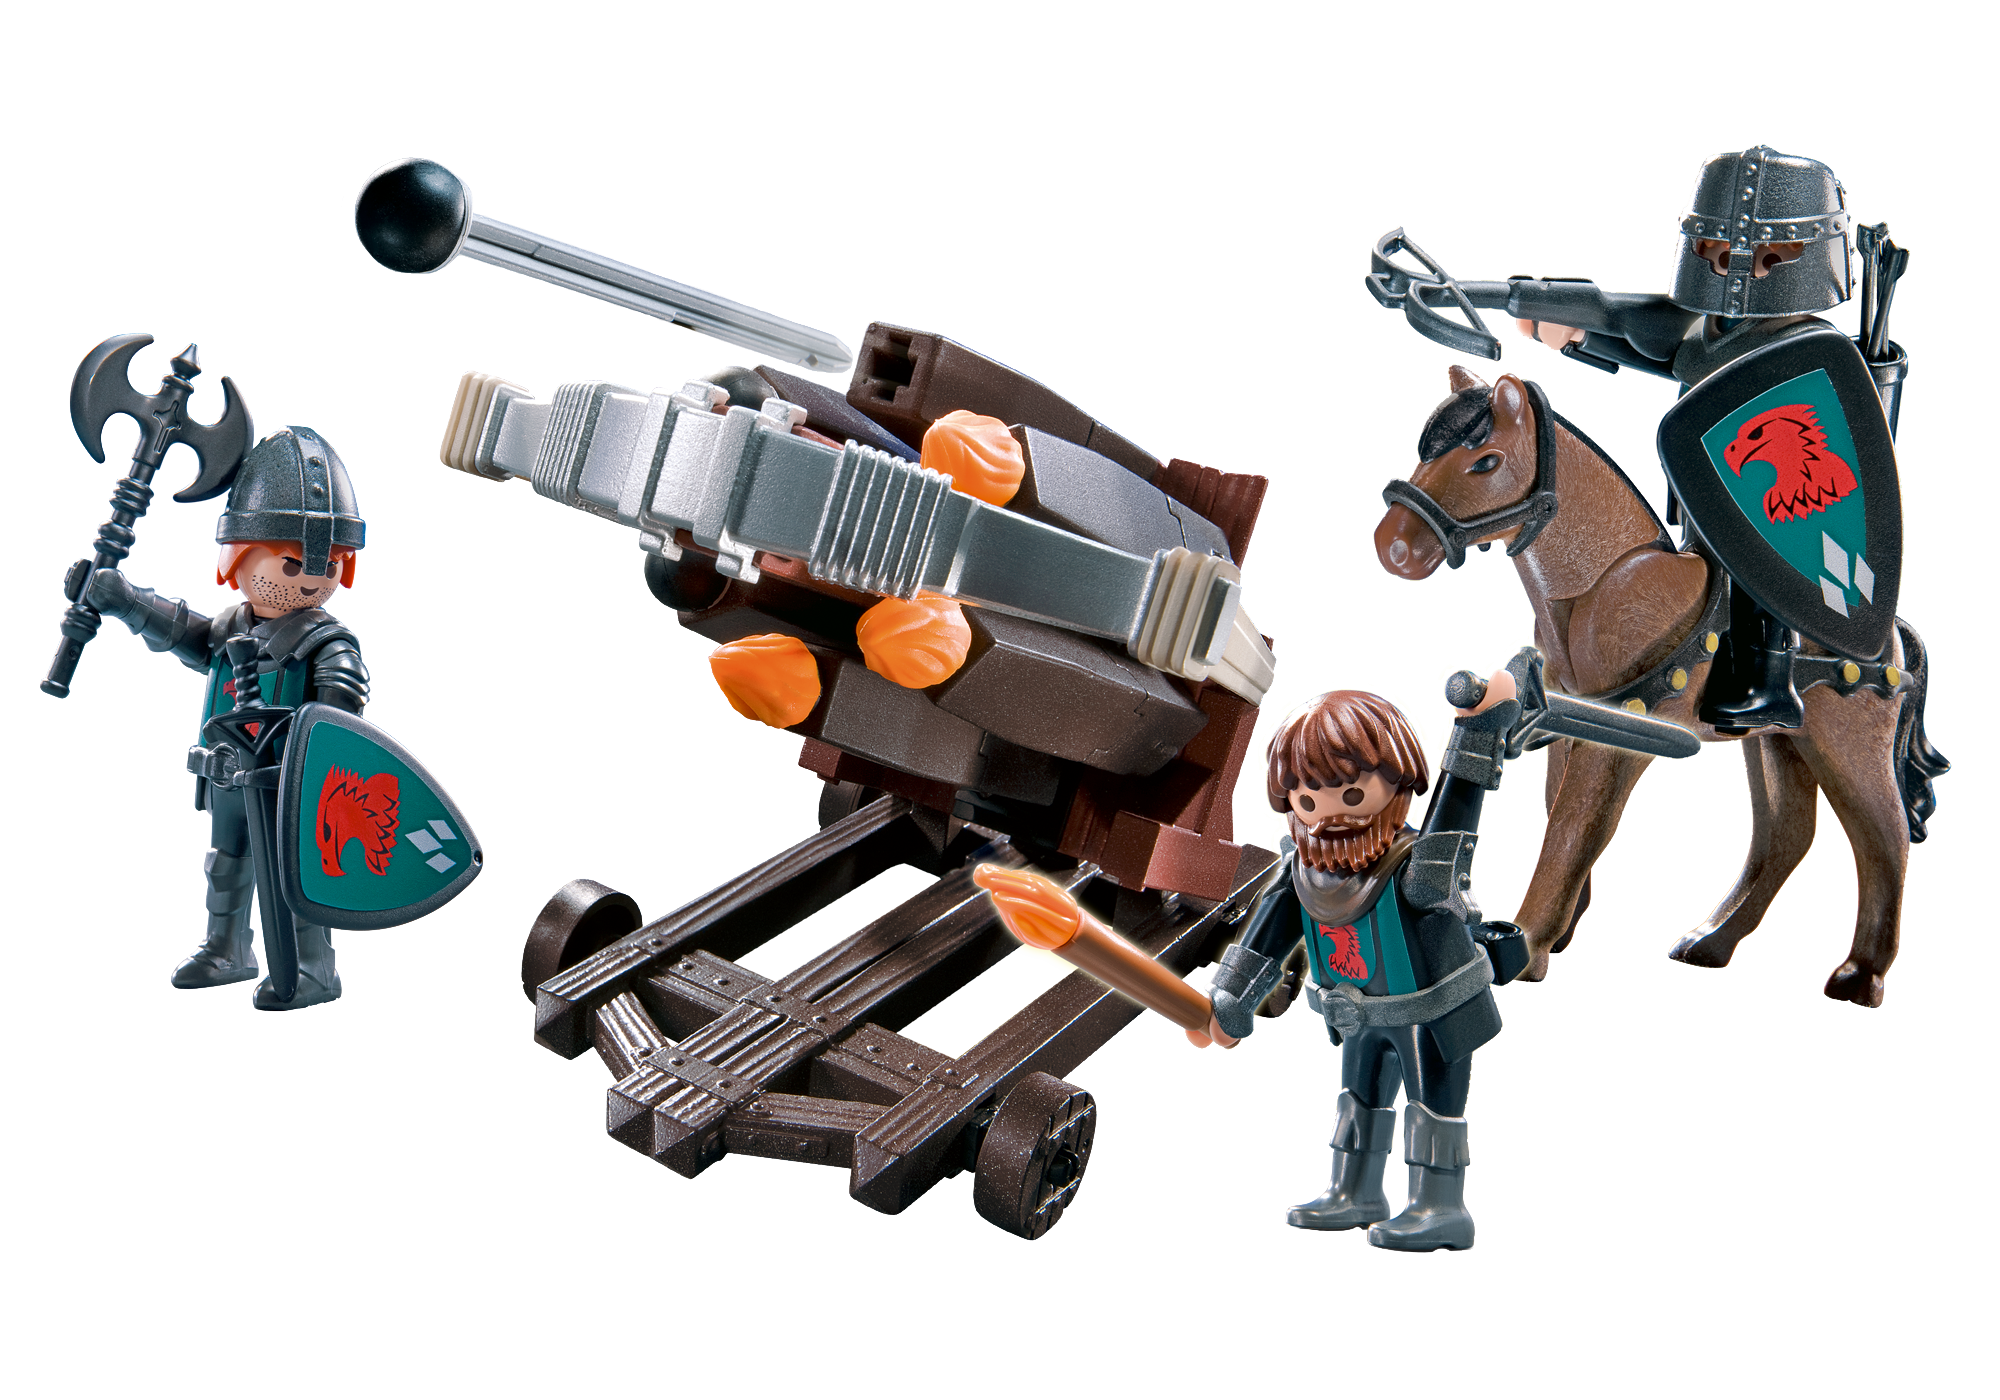 http://media.playmobil.com/i/playmobil/4868_product_detail